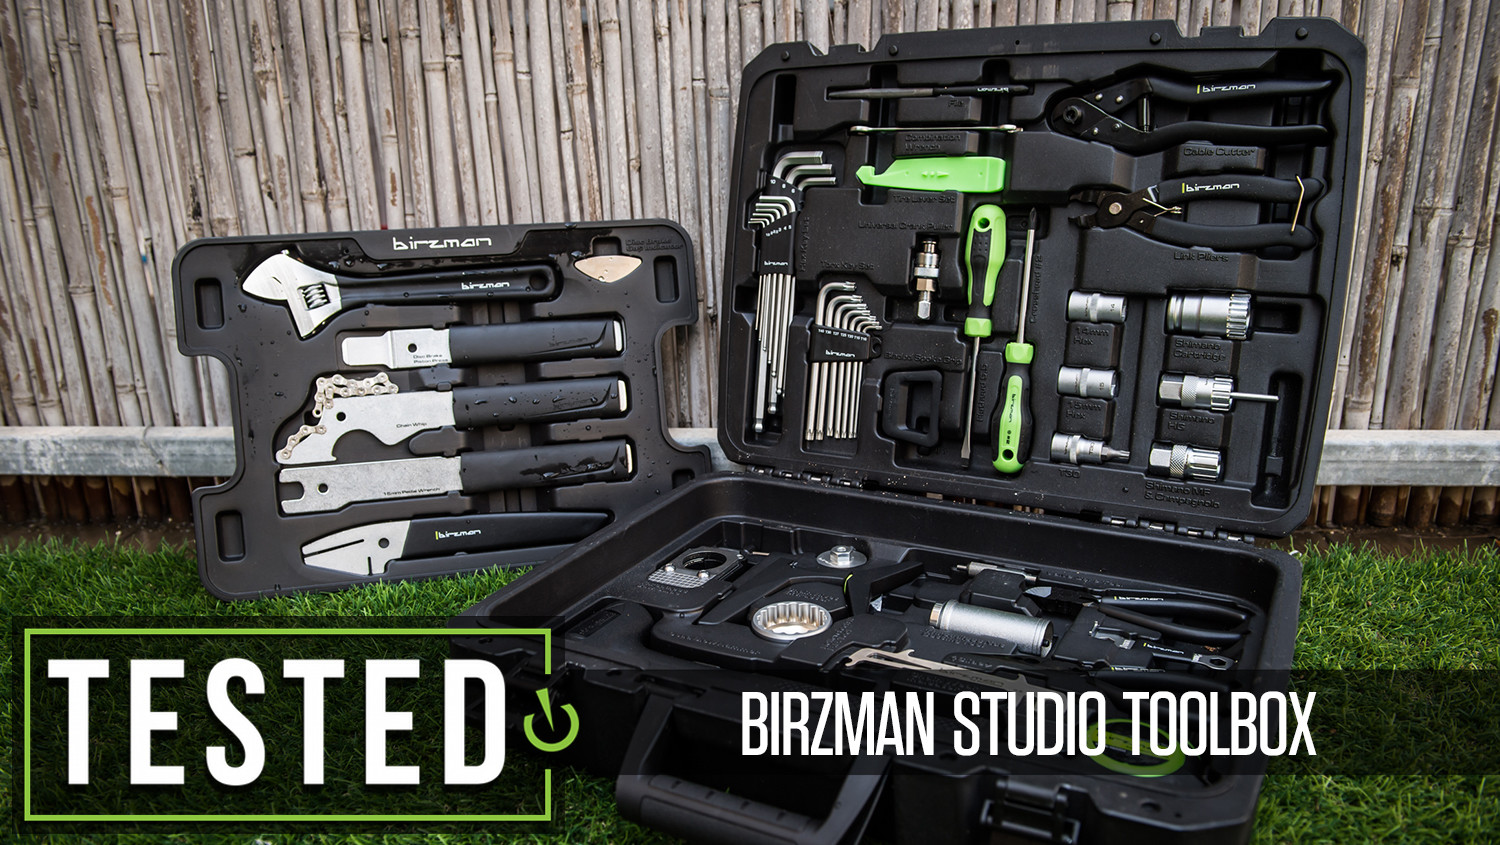 Tested: Birzman Studio Toolbox